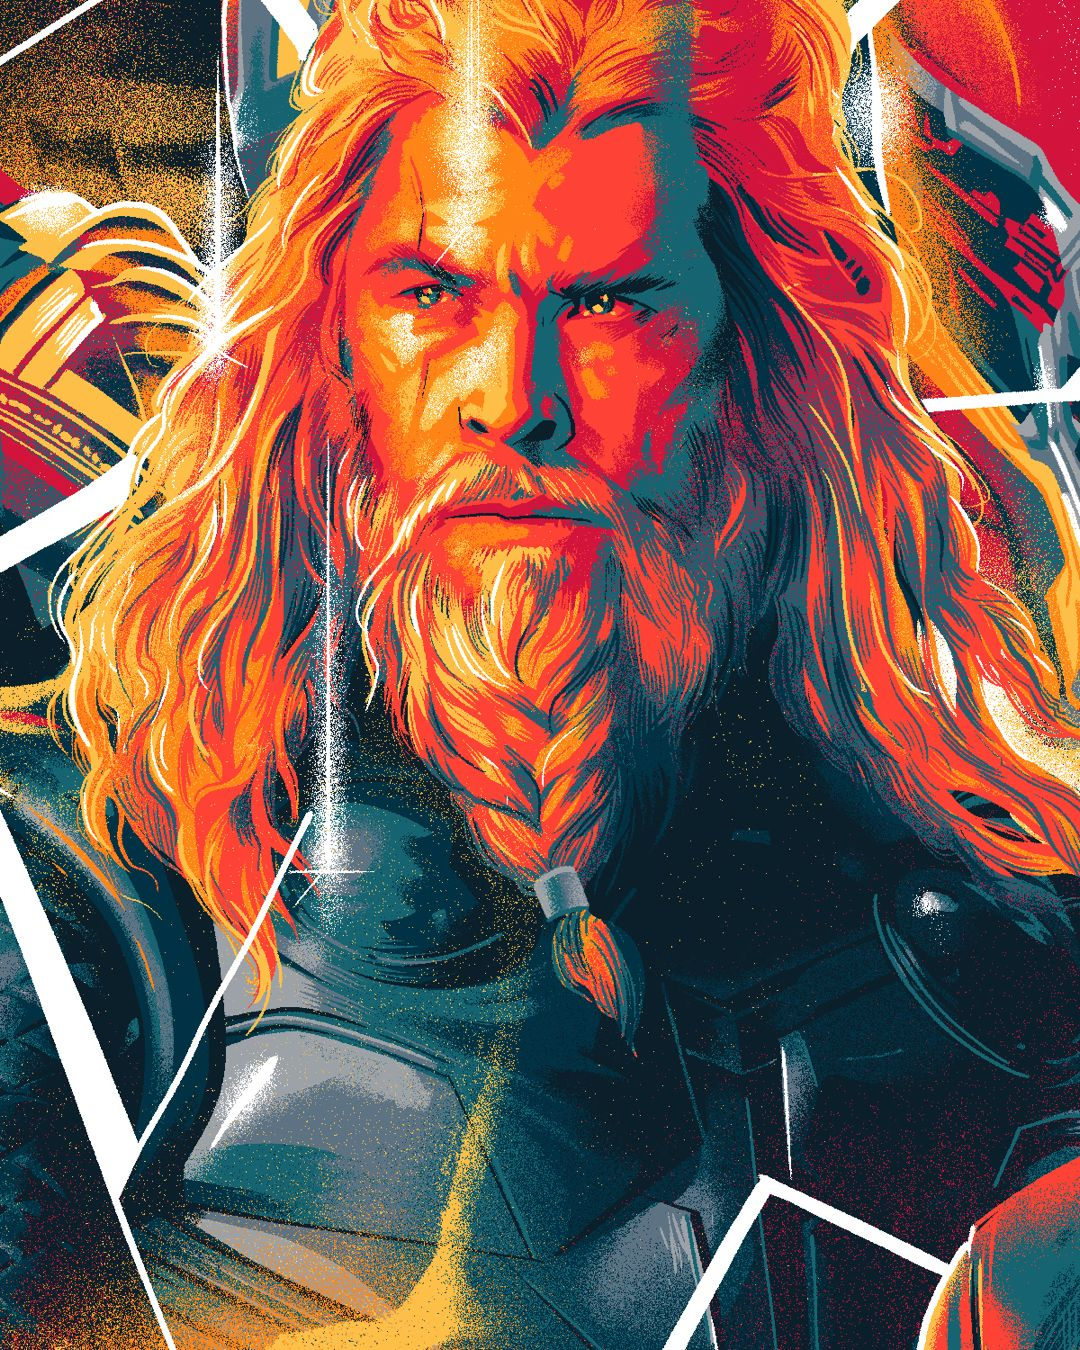 Pin By Alejo G On Marvel Marvel Thor Marvel Superhero Posters Marvel Superheroes